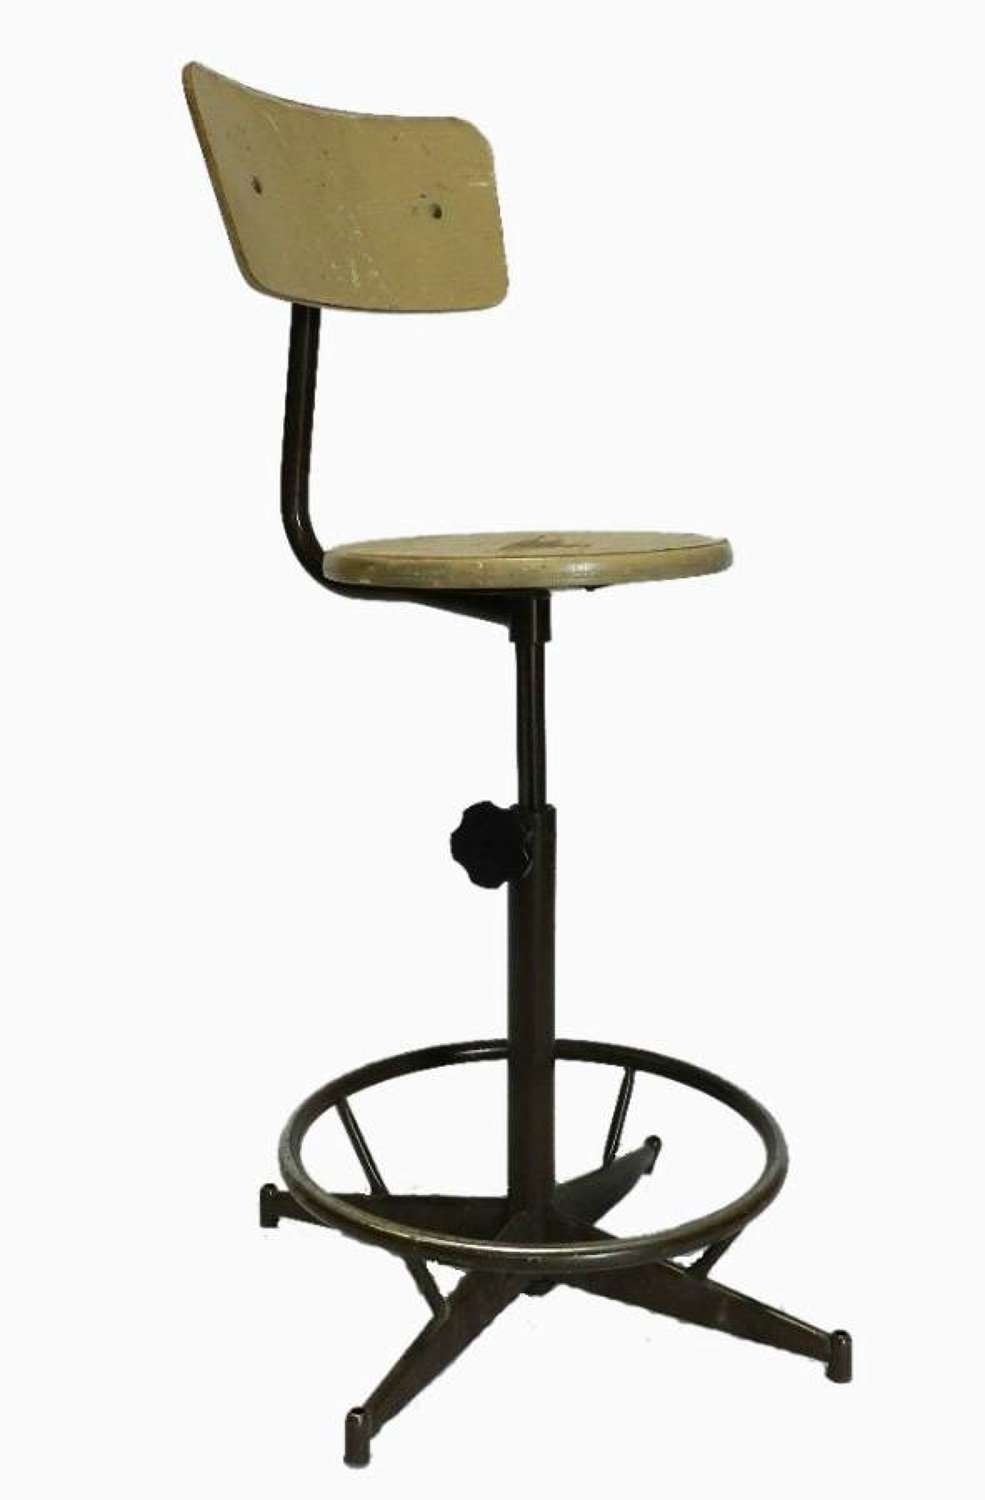 Vintage French ex La Poste Post office Industrial Stool